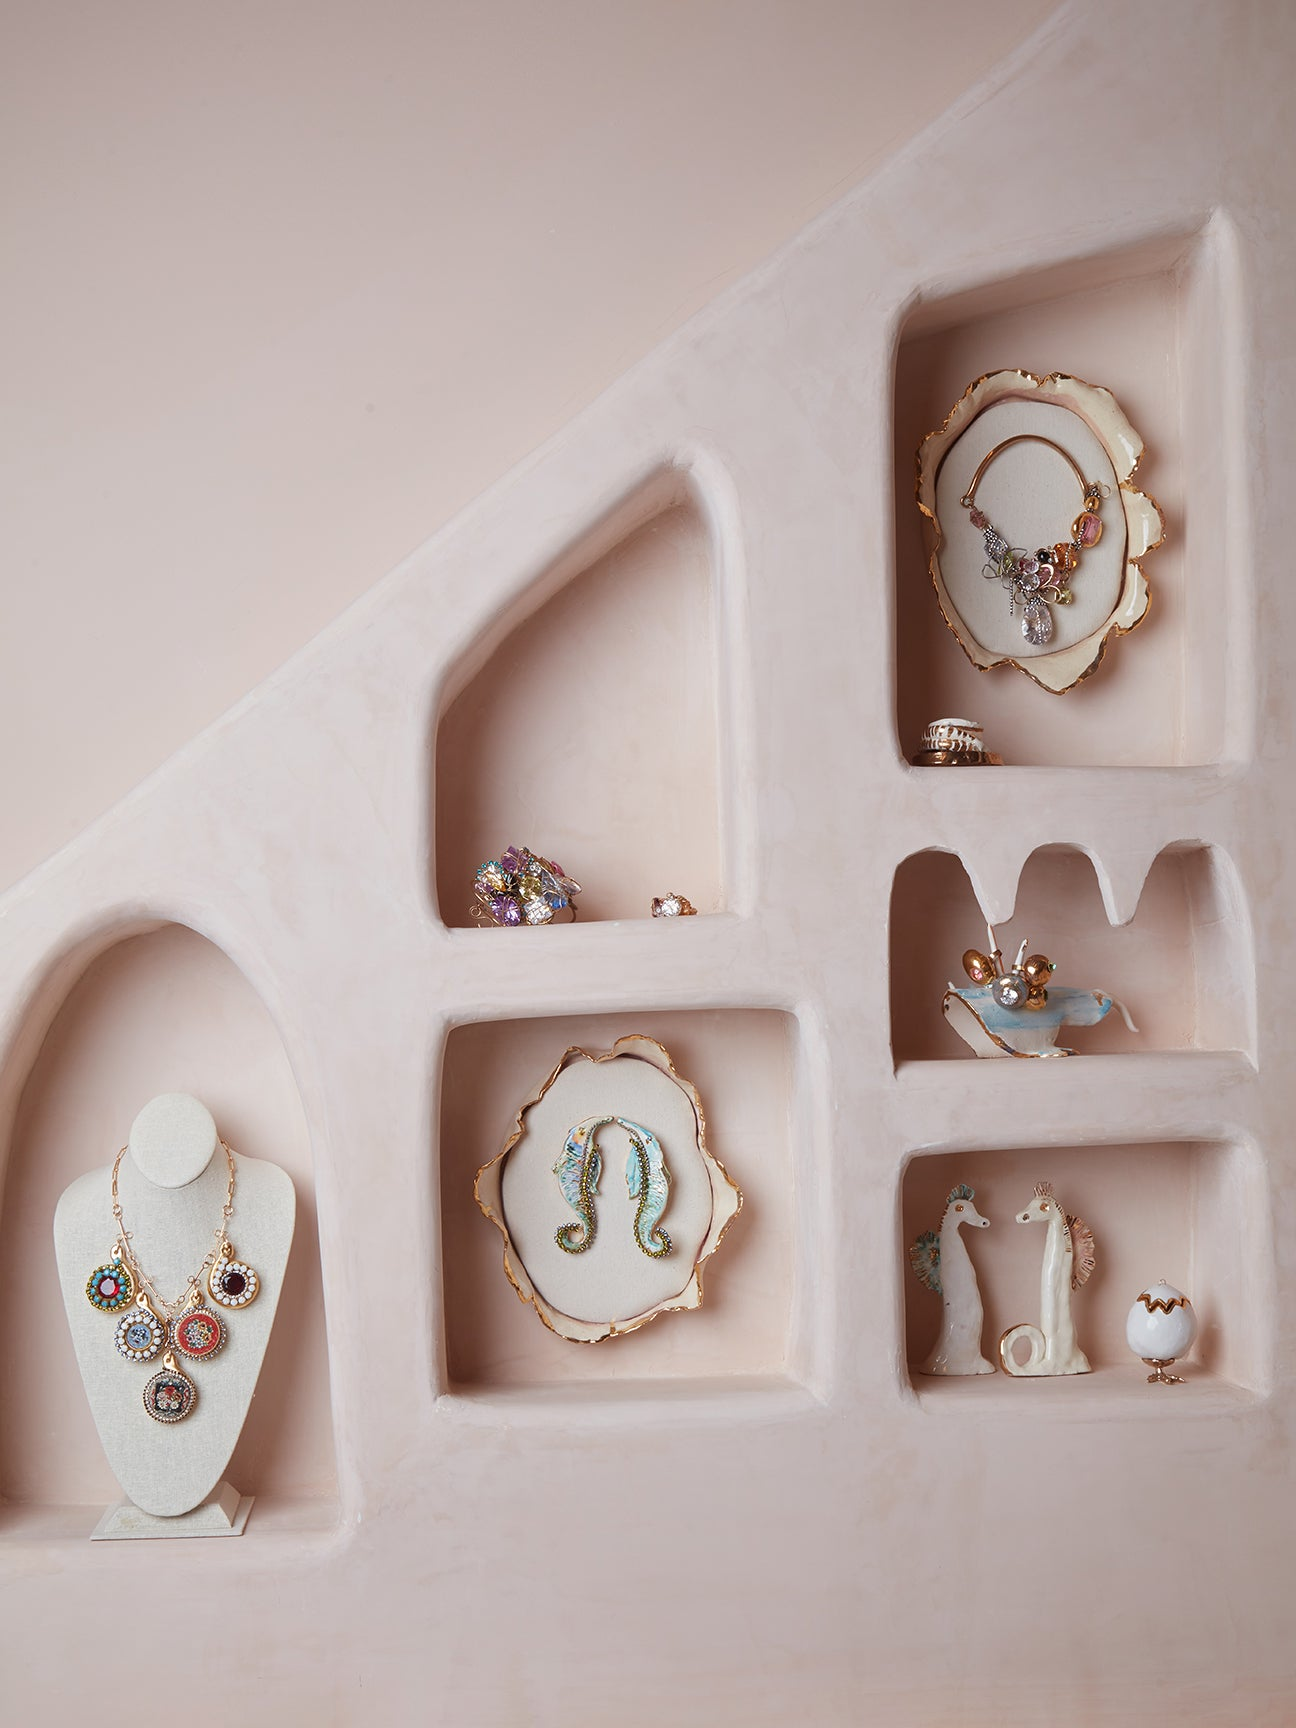 wall niches filled with pink jewelry